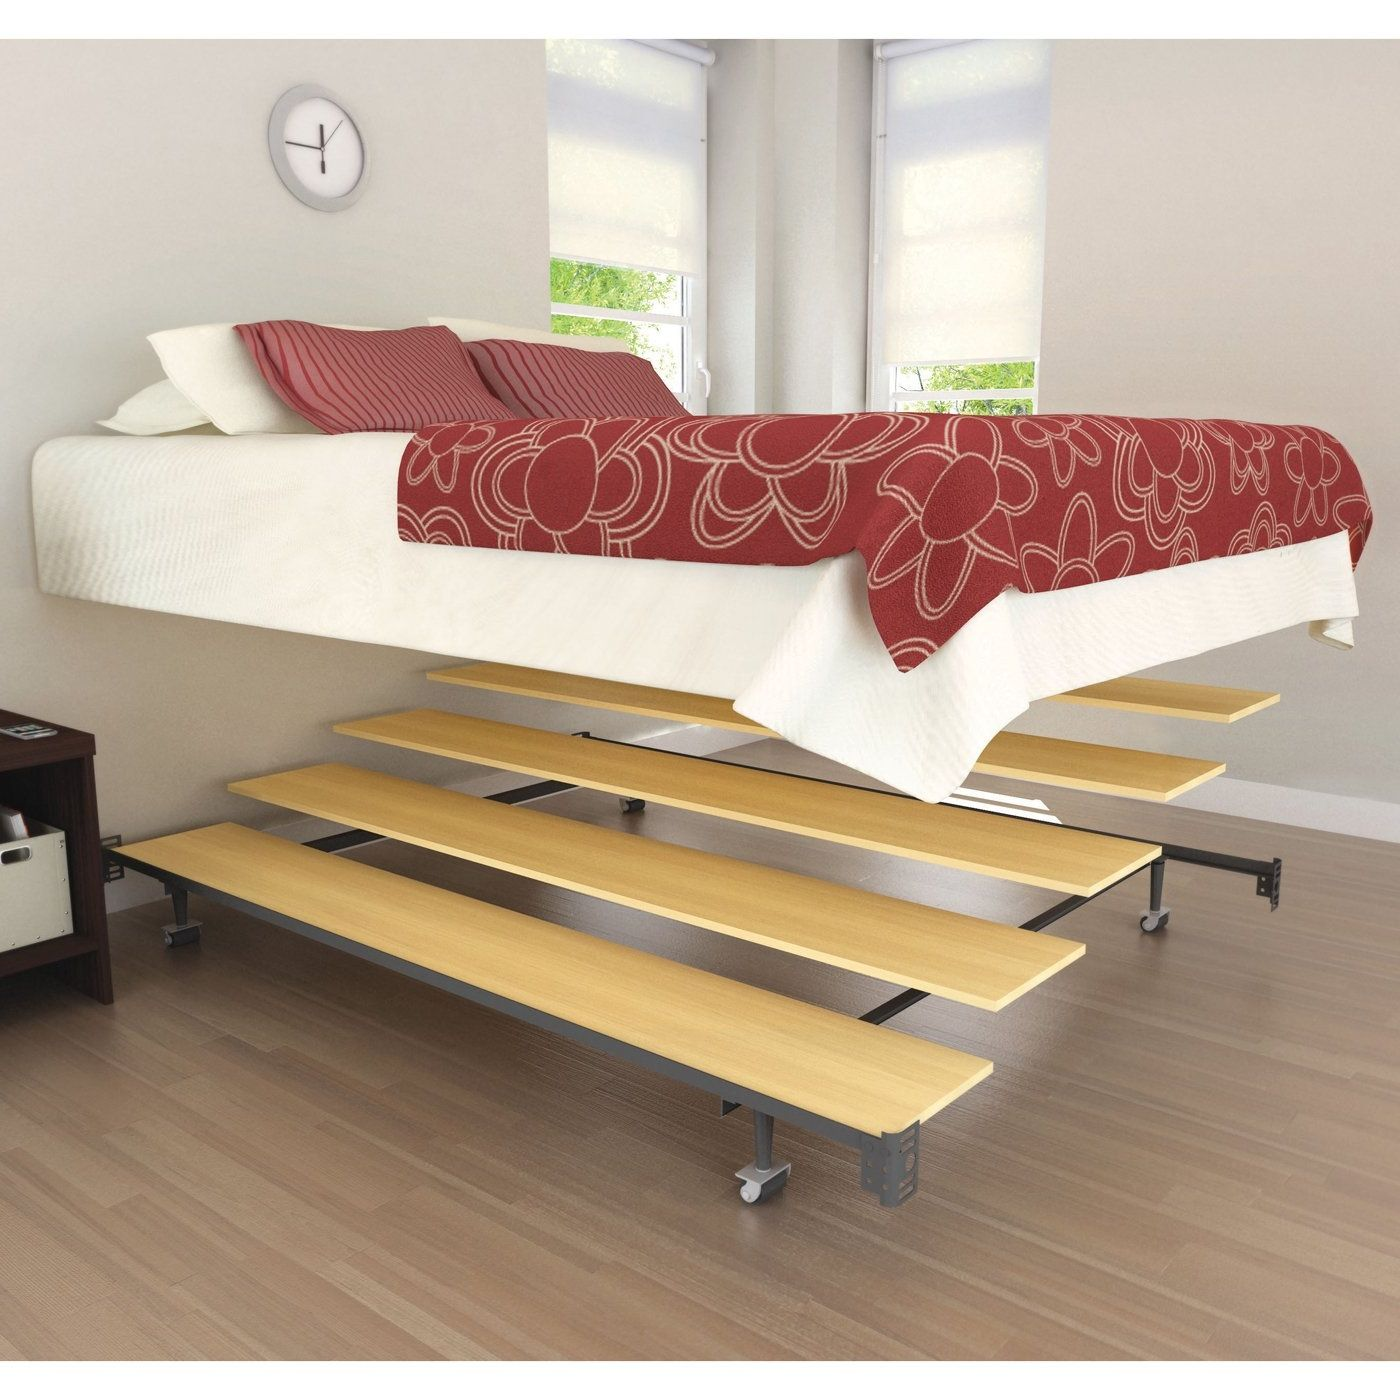 Amusing Cheap Full Size Bed Frames Cheap bed frame, Cool